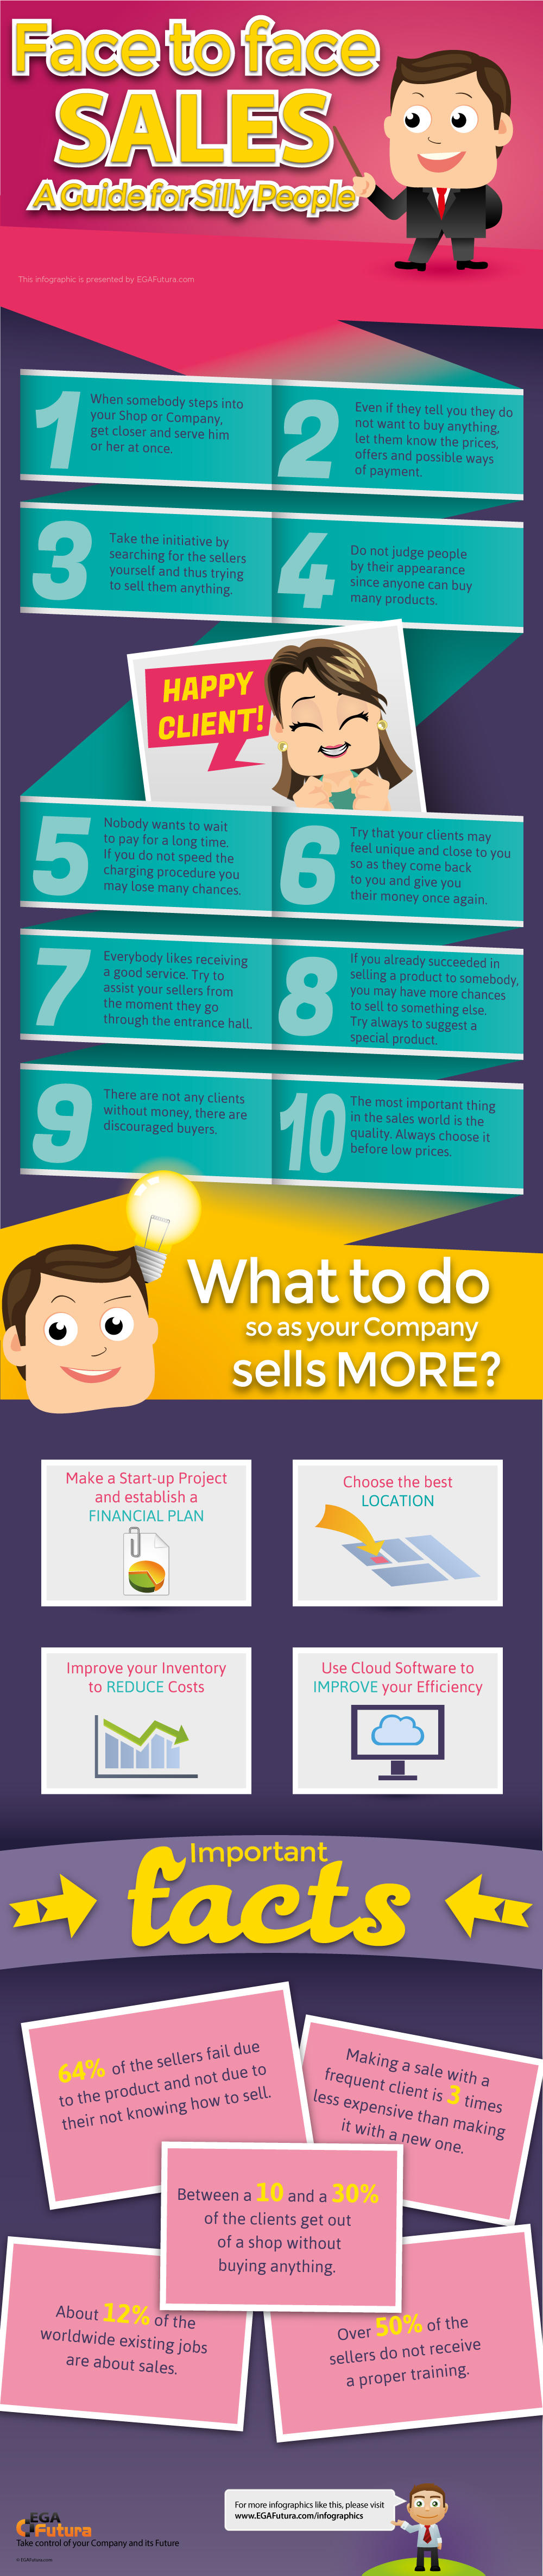 Face-to-face_Sales_Guide_People_EGAFuturaERP